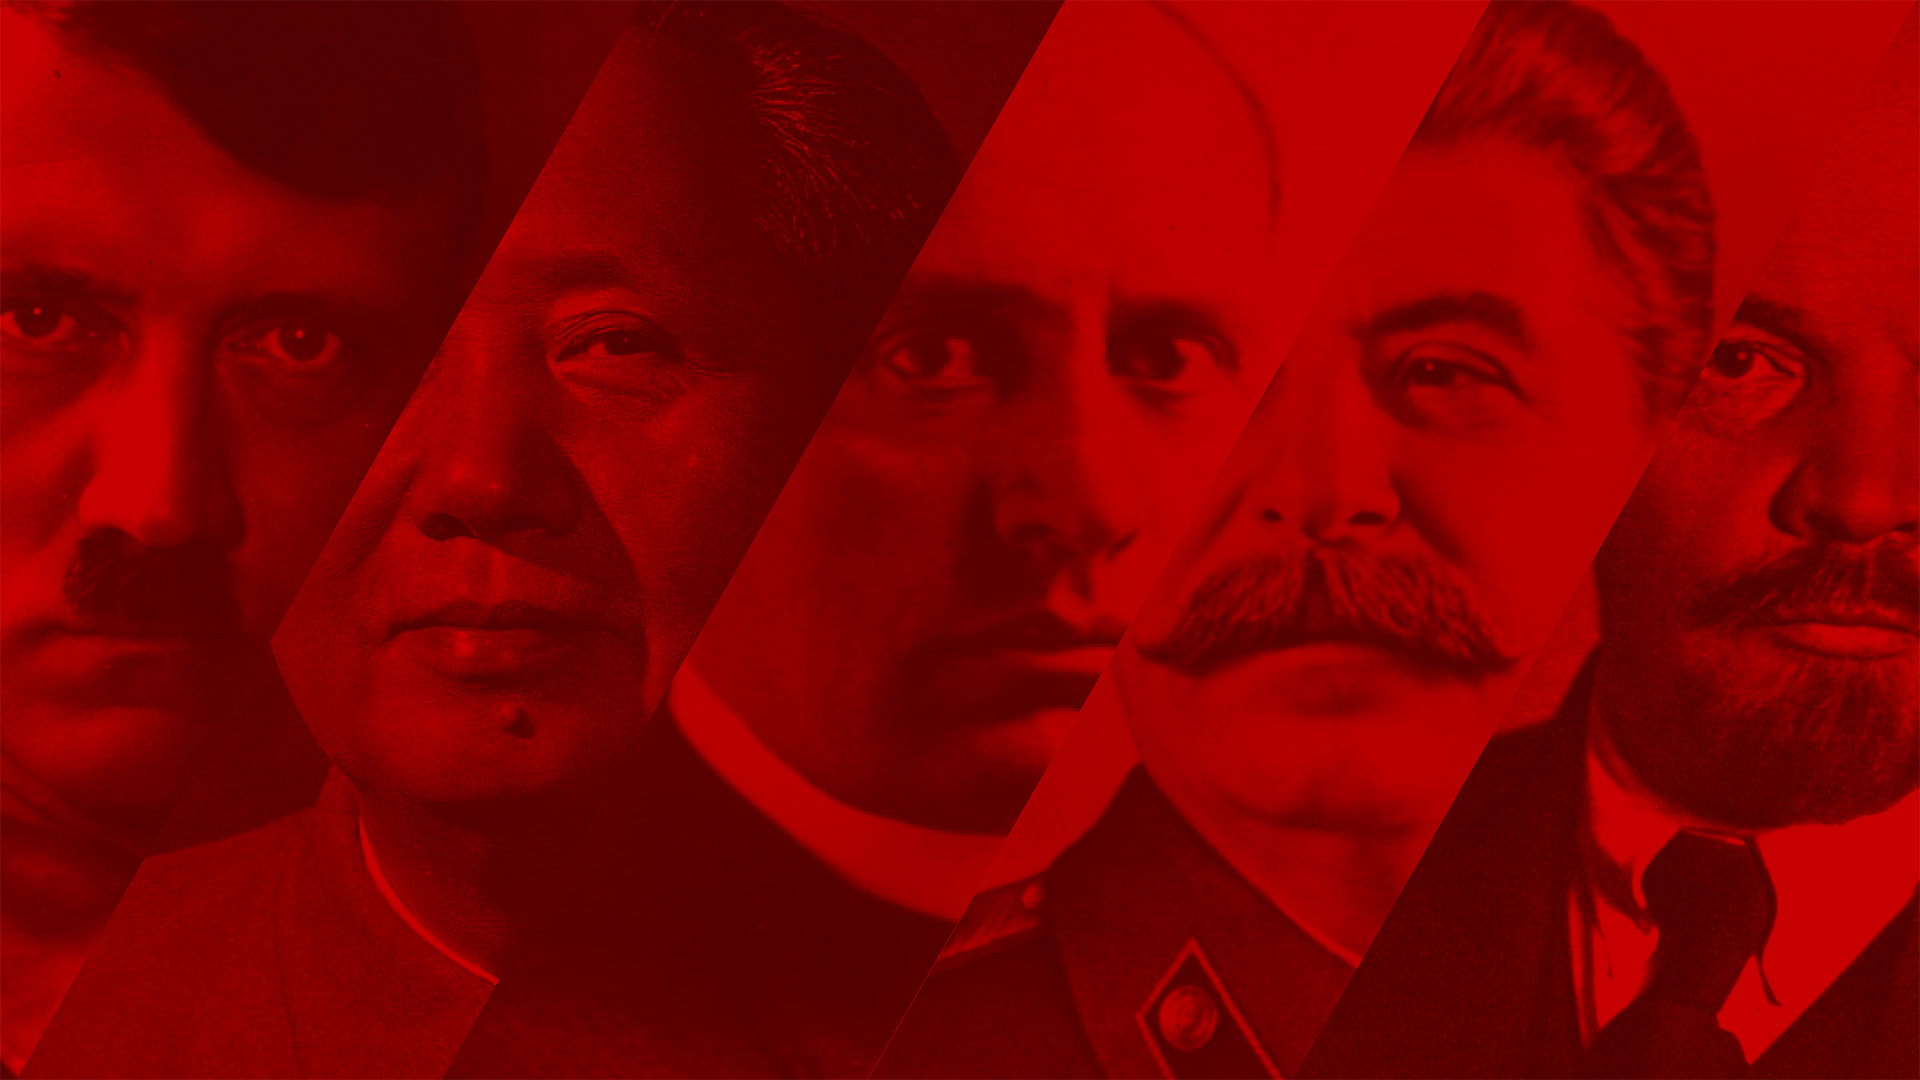 Collage of Hitler, Mao, Mussolini, Stalin and Lenin